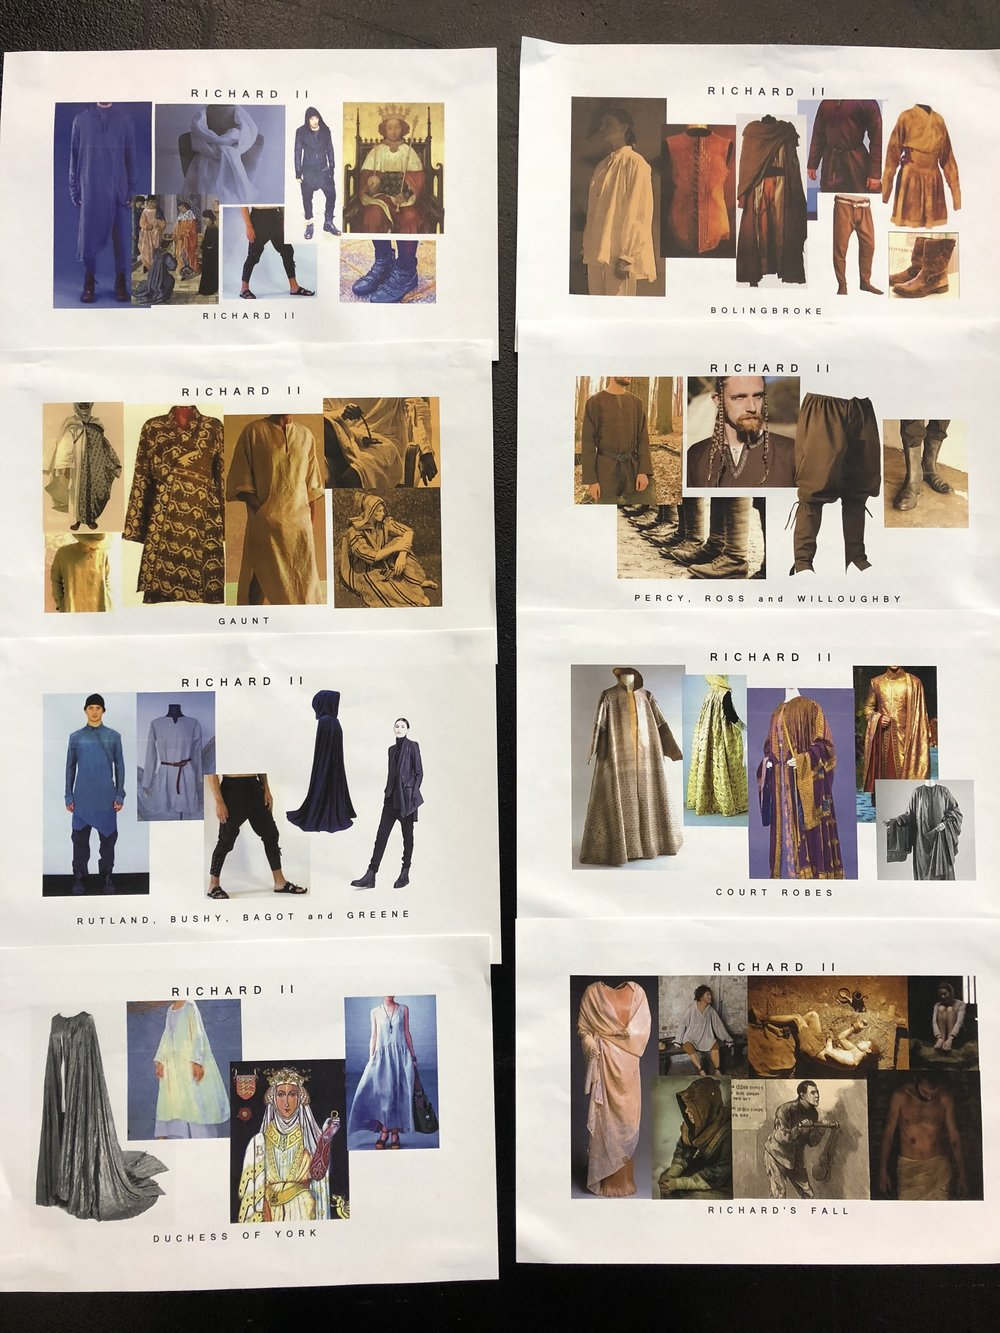 Costume sketches for Richard II by Andrea Hood_2.jpg